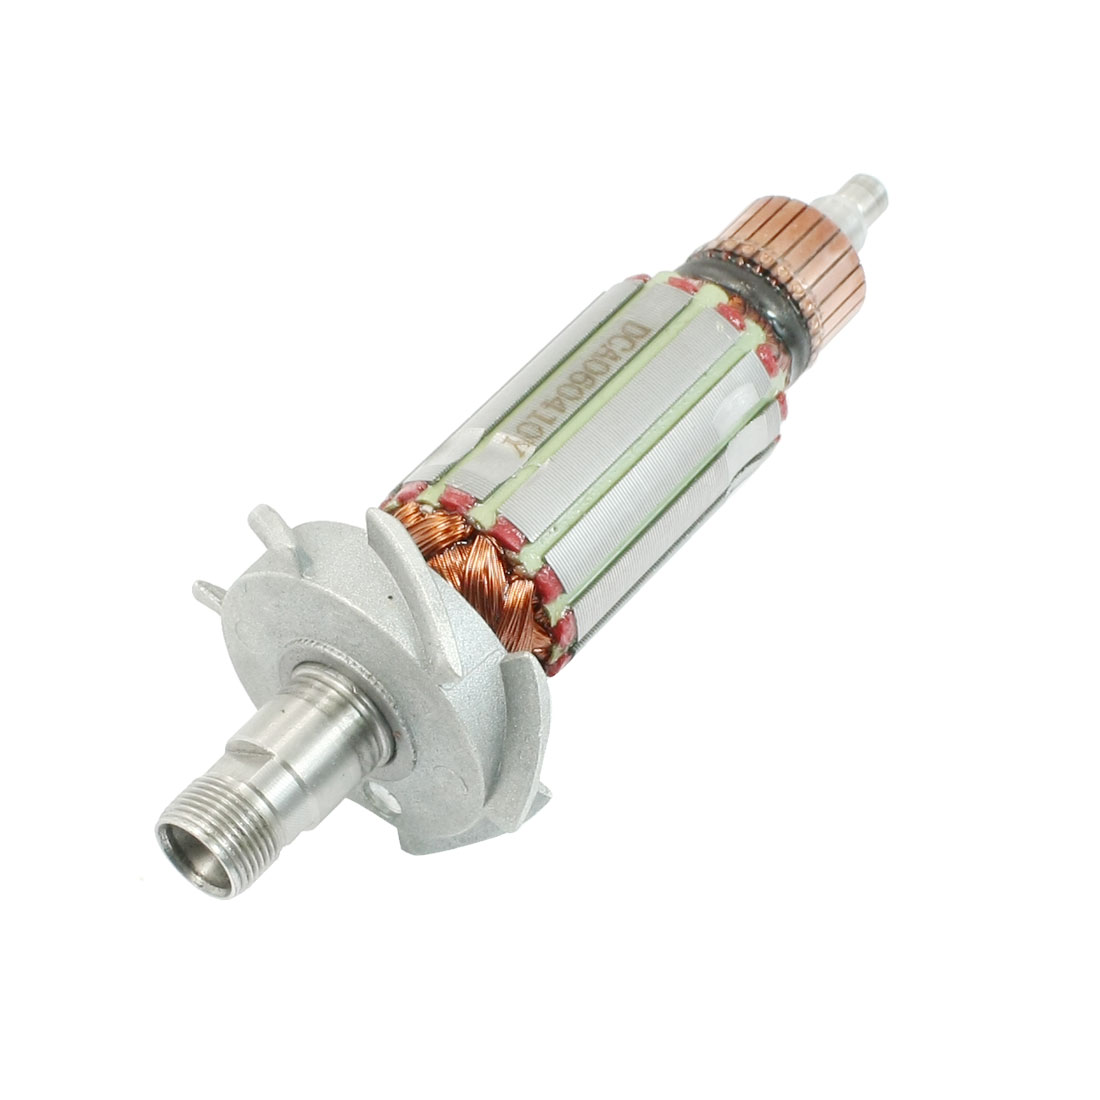 AC 220V Stainless Steel Electric Motor Rotor for Makita N3701 Angle Grinder